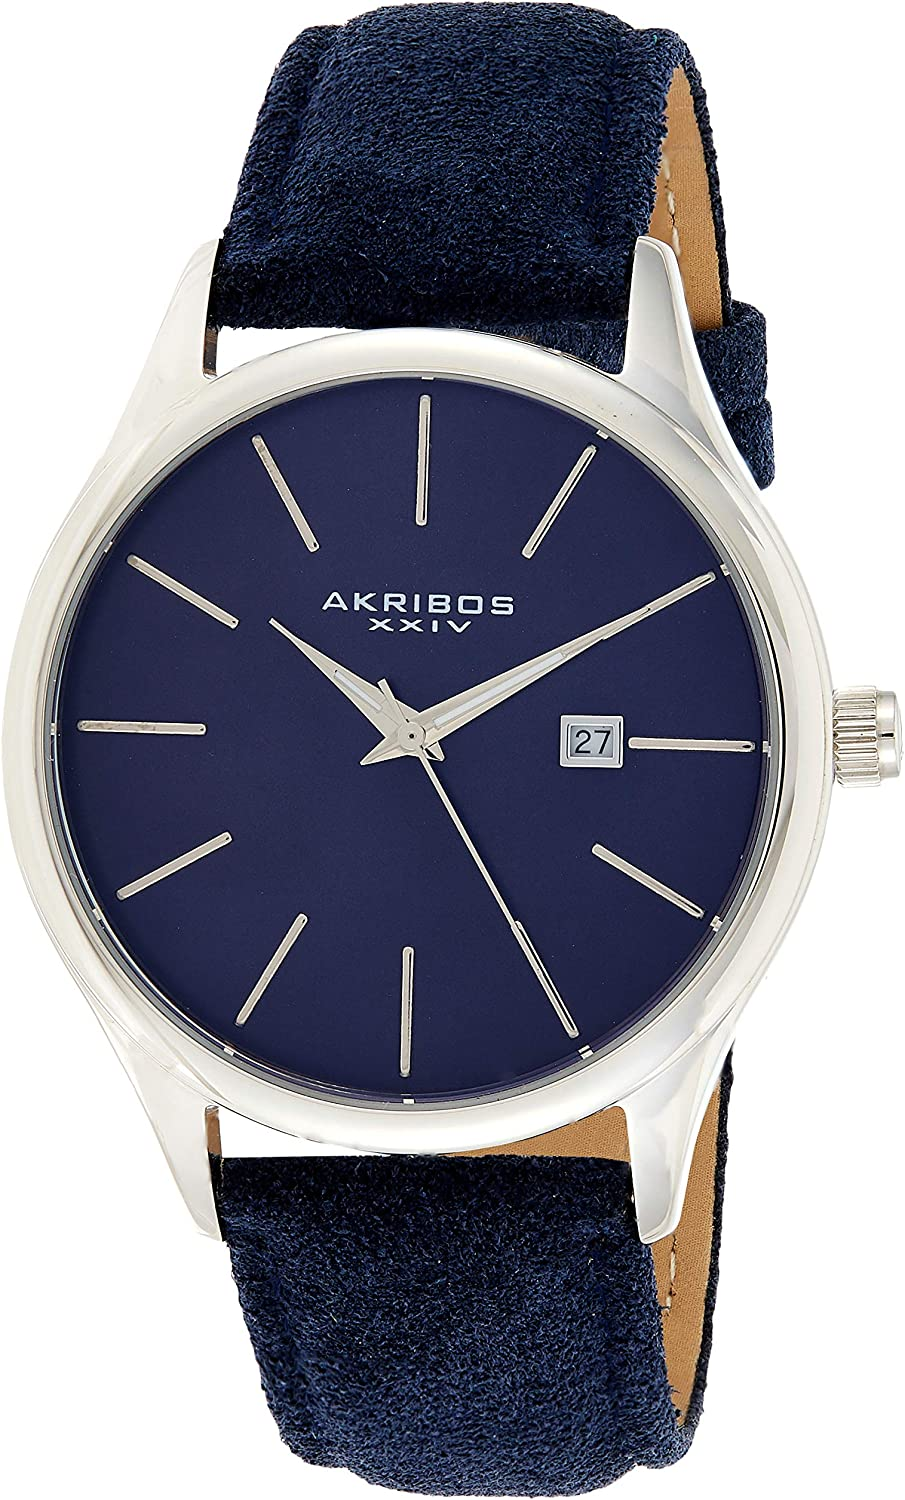 Akribos XXIV AK1019 Men's Suede Leather Watch – Classic Round Casual Designer Wristwatch Date Window Sunray Dial